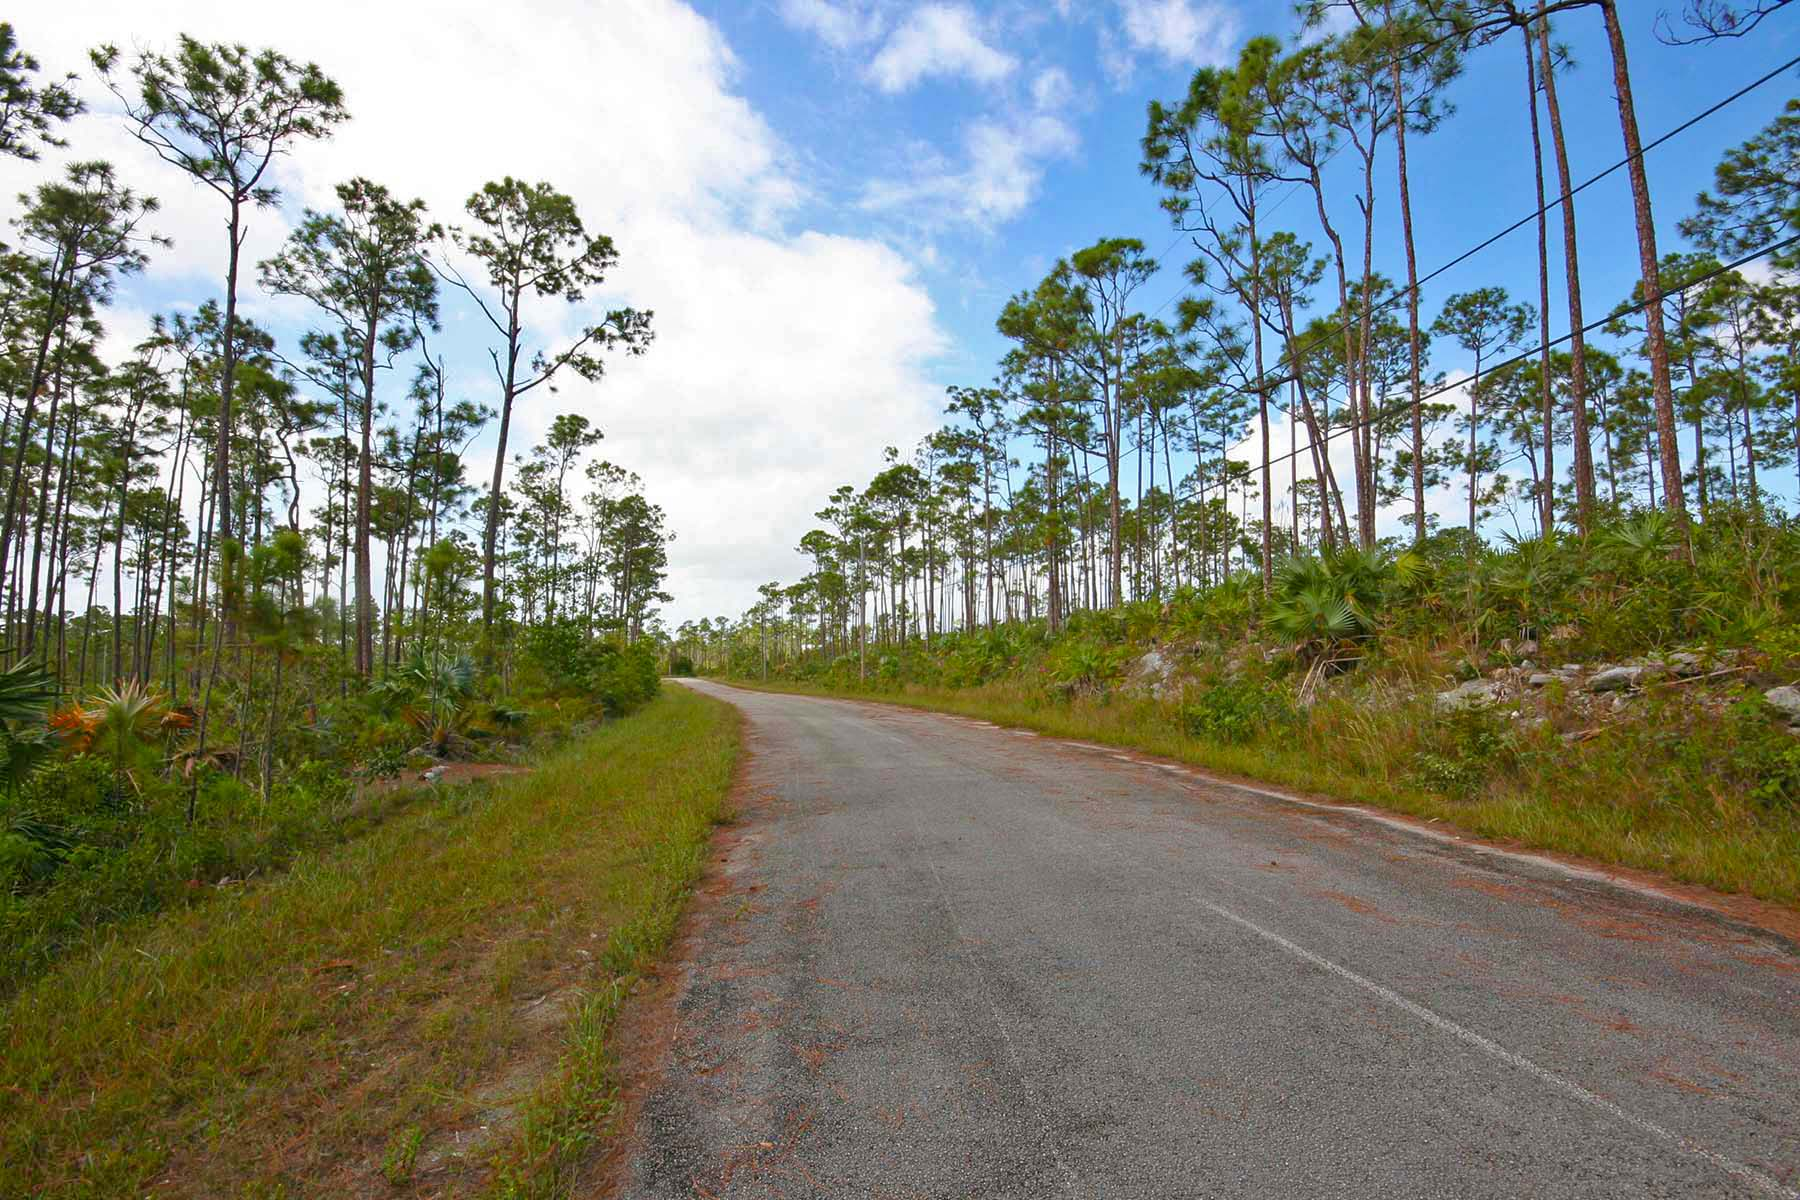 Land for Sale at Affordable Multi-Family Lot in Lovely Developed Neighborhood! Shannon, Grand Bahama, Bahamas